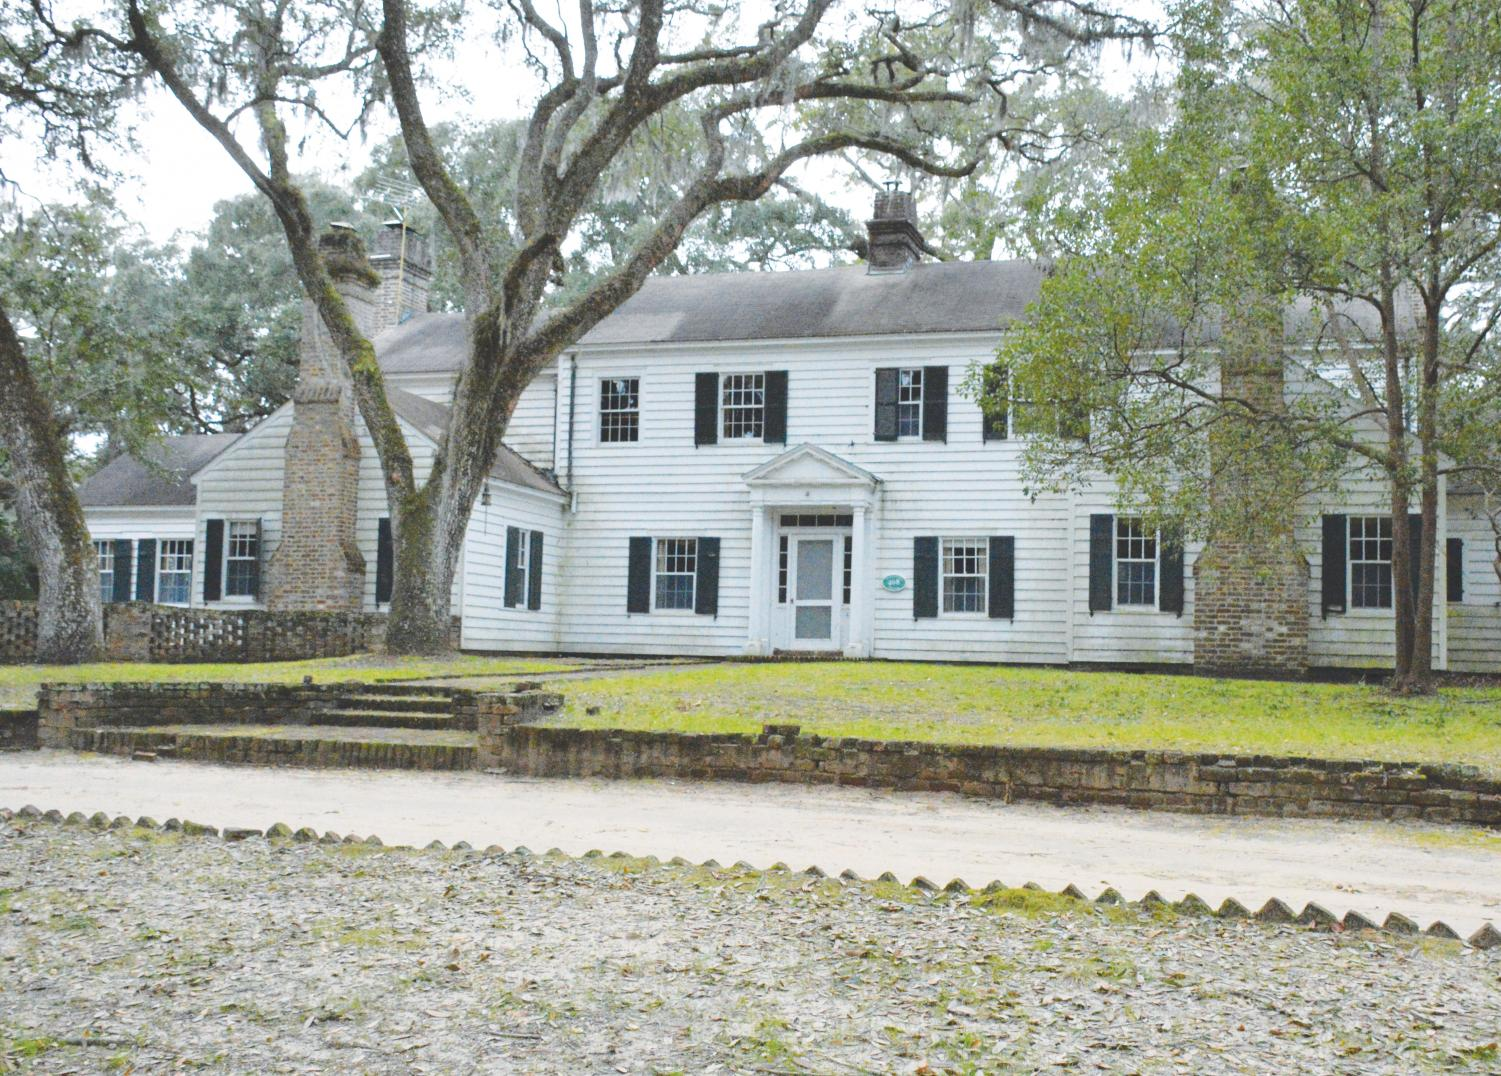 The Bellefield House, the former home of Belle Baruch, presents opportunities for researchers to glimpse into her life.